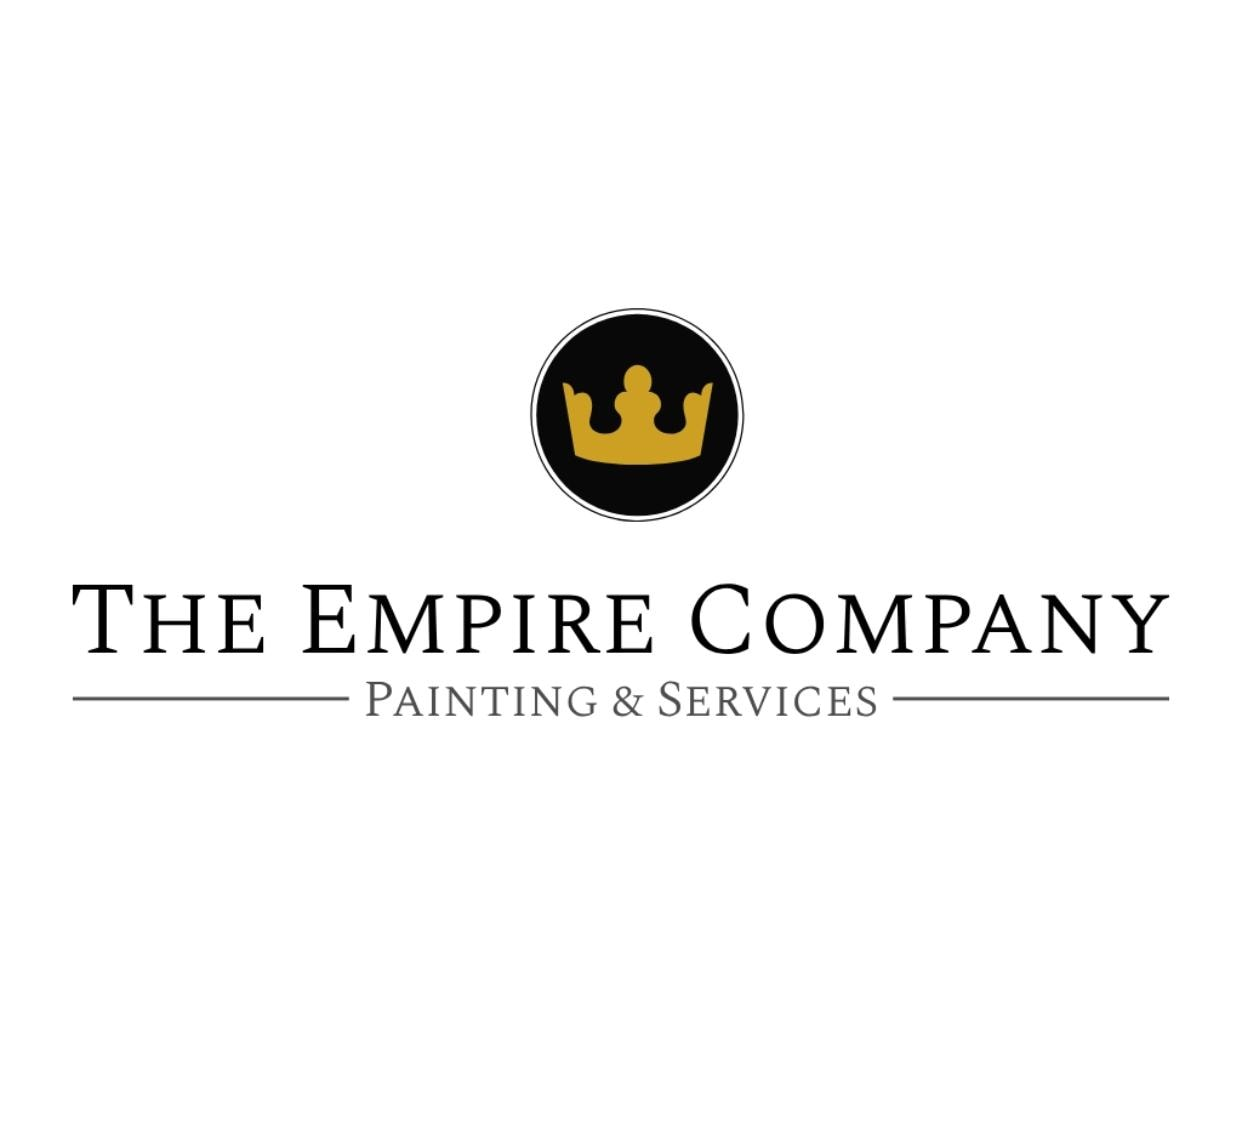 The Empire Company